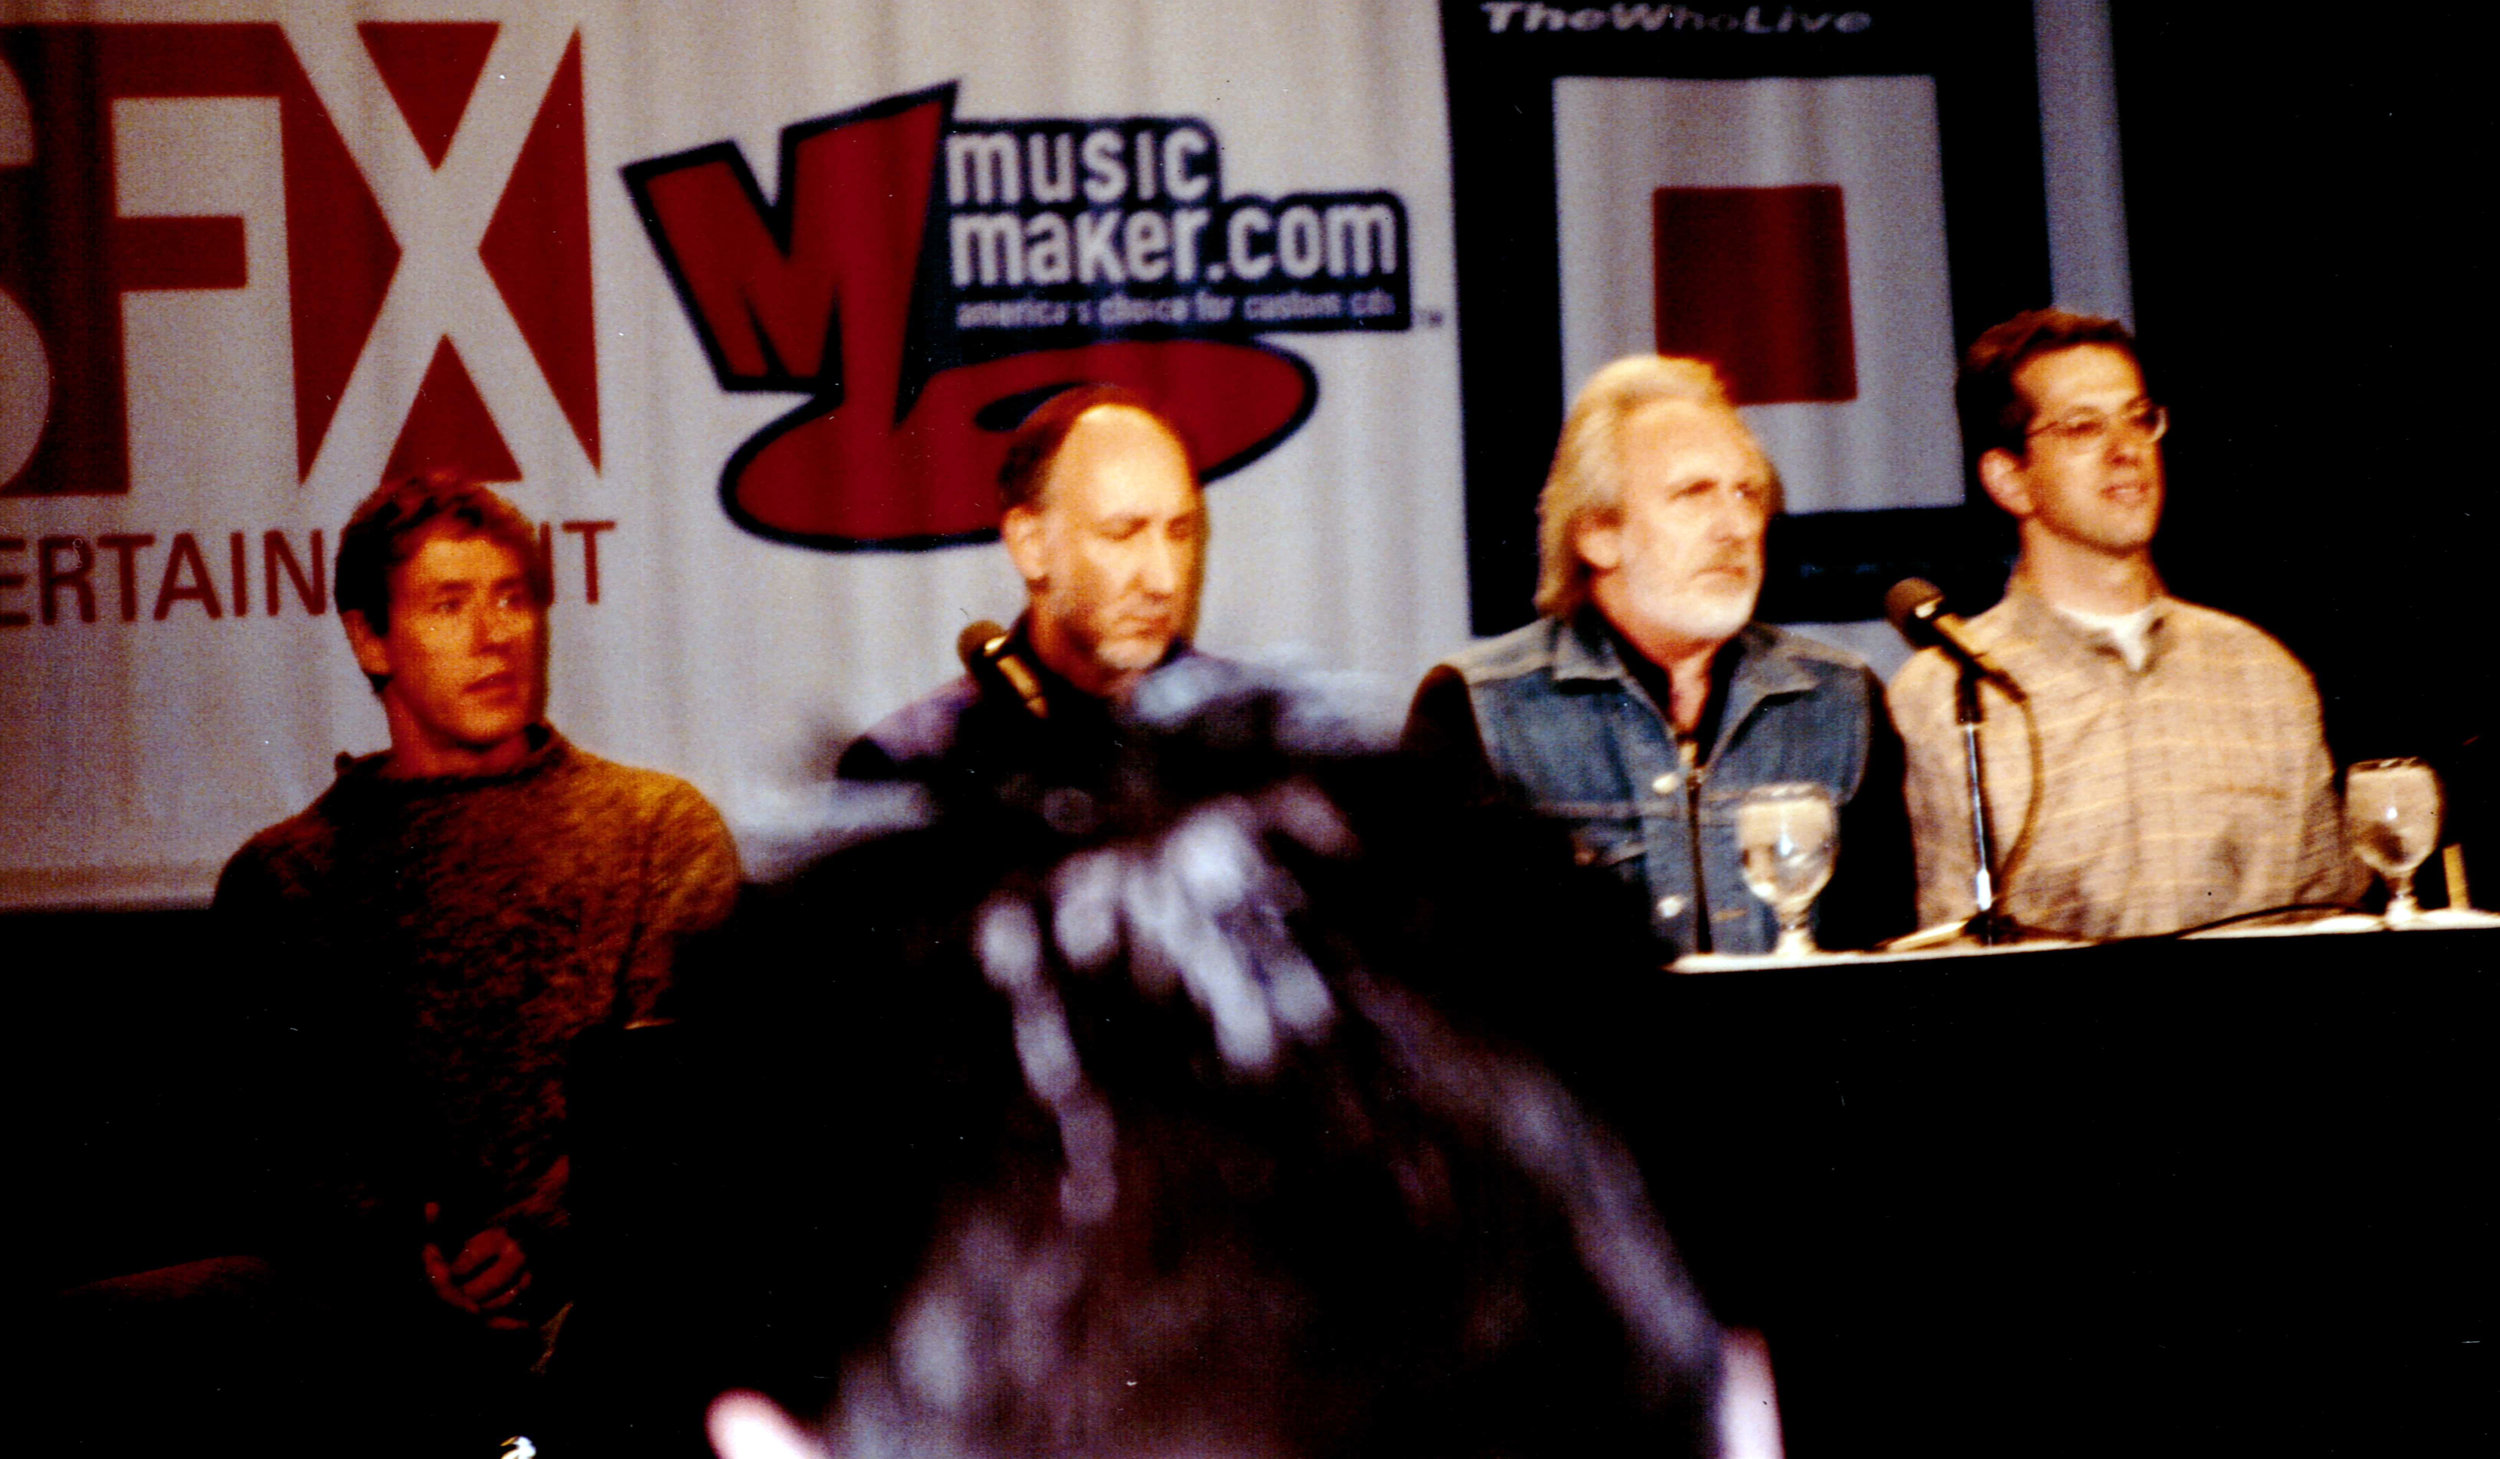 Roger Daltrey, Pete Townshend, John Entwistle, and Larry Lieberman announce The Who tour and the first all-digital album release by a major recording artist, April 10, 2000.